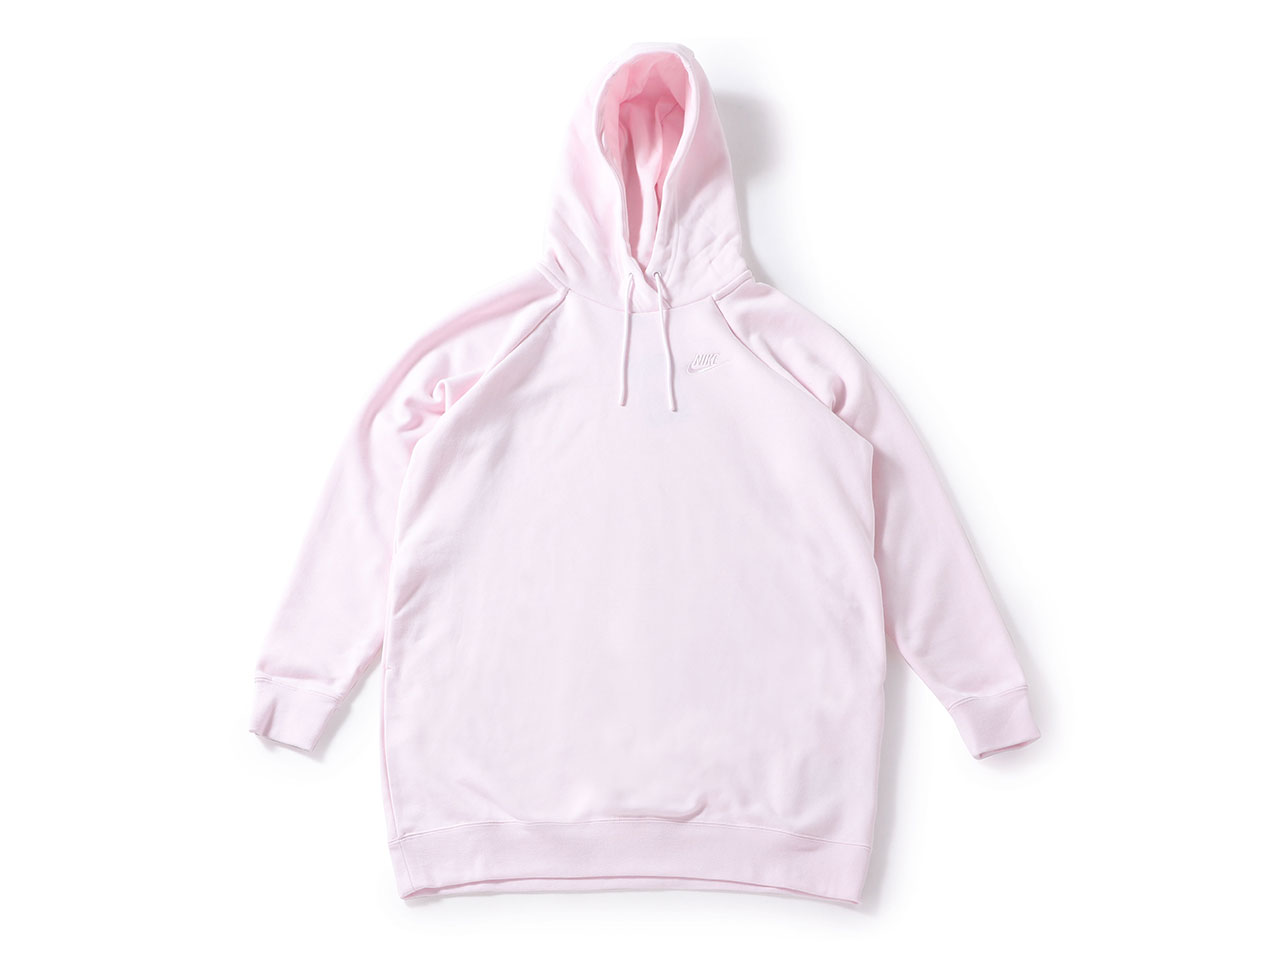 【SALE】NIKE W NSW PO HOODIE DRESS PSTL